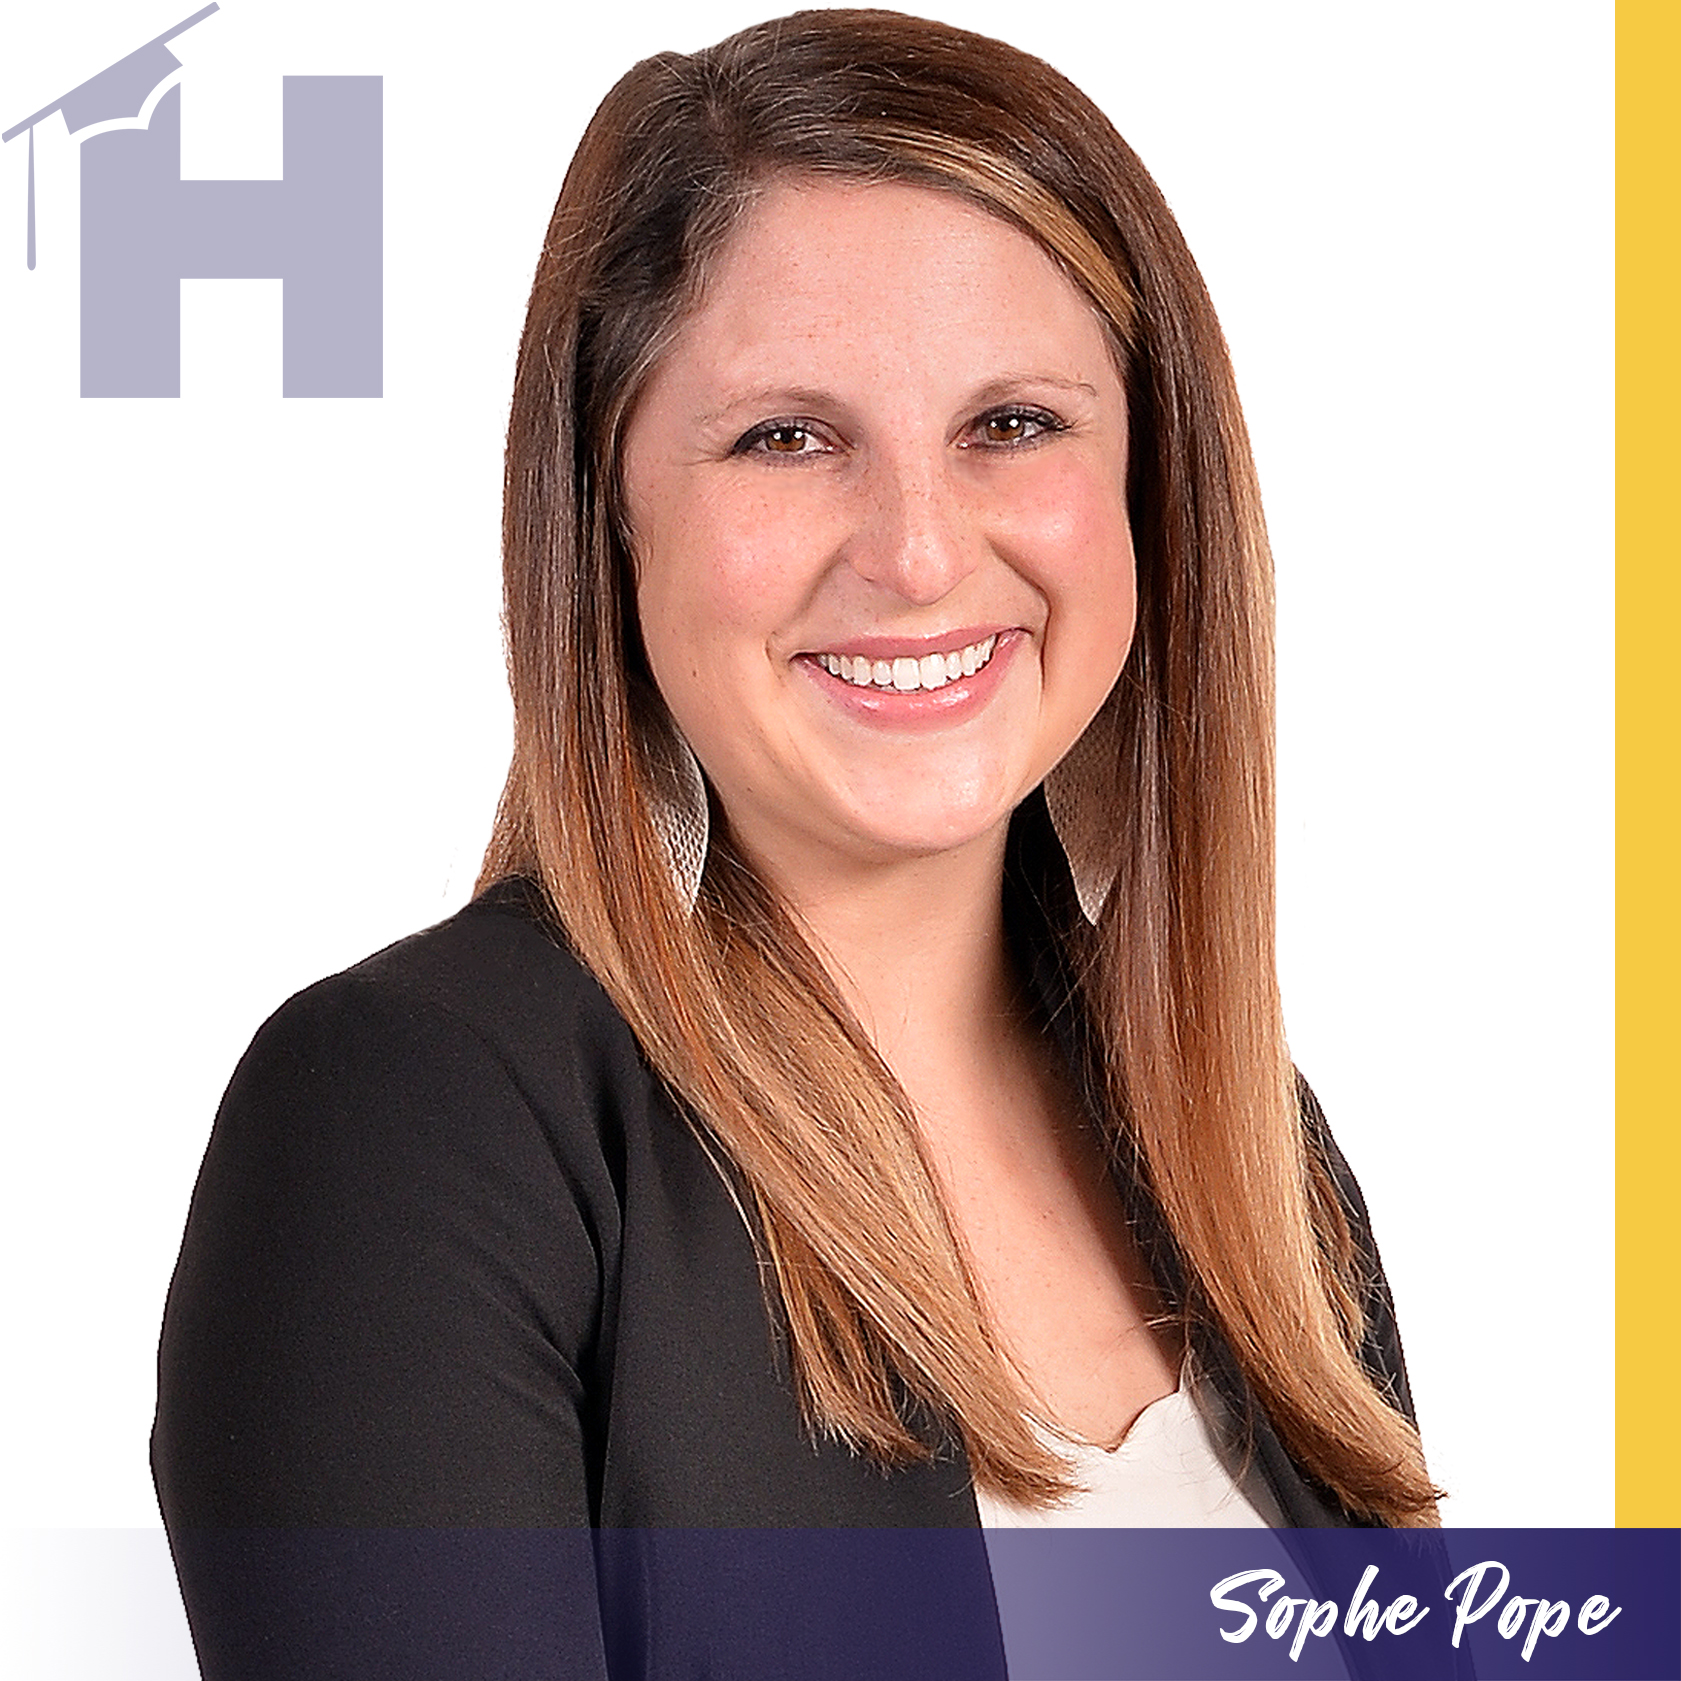 Sophe Pope - District 4